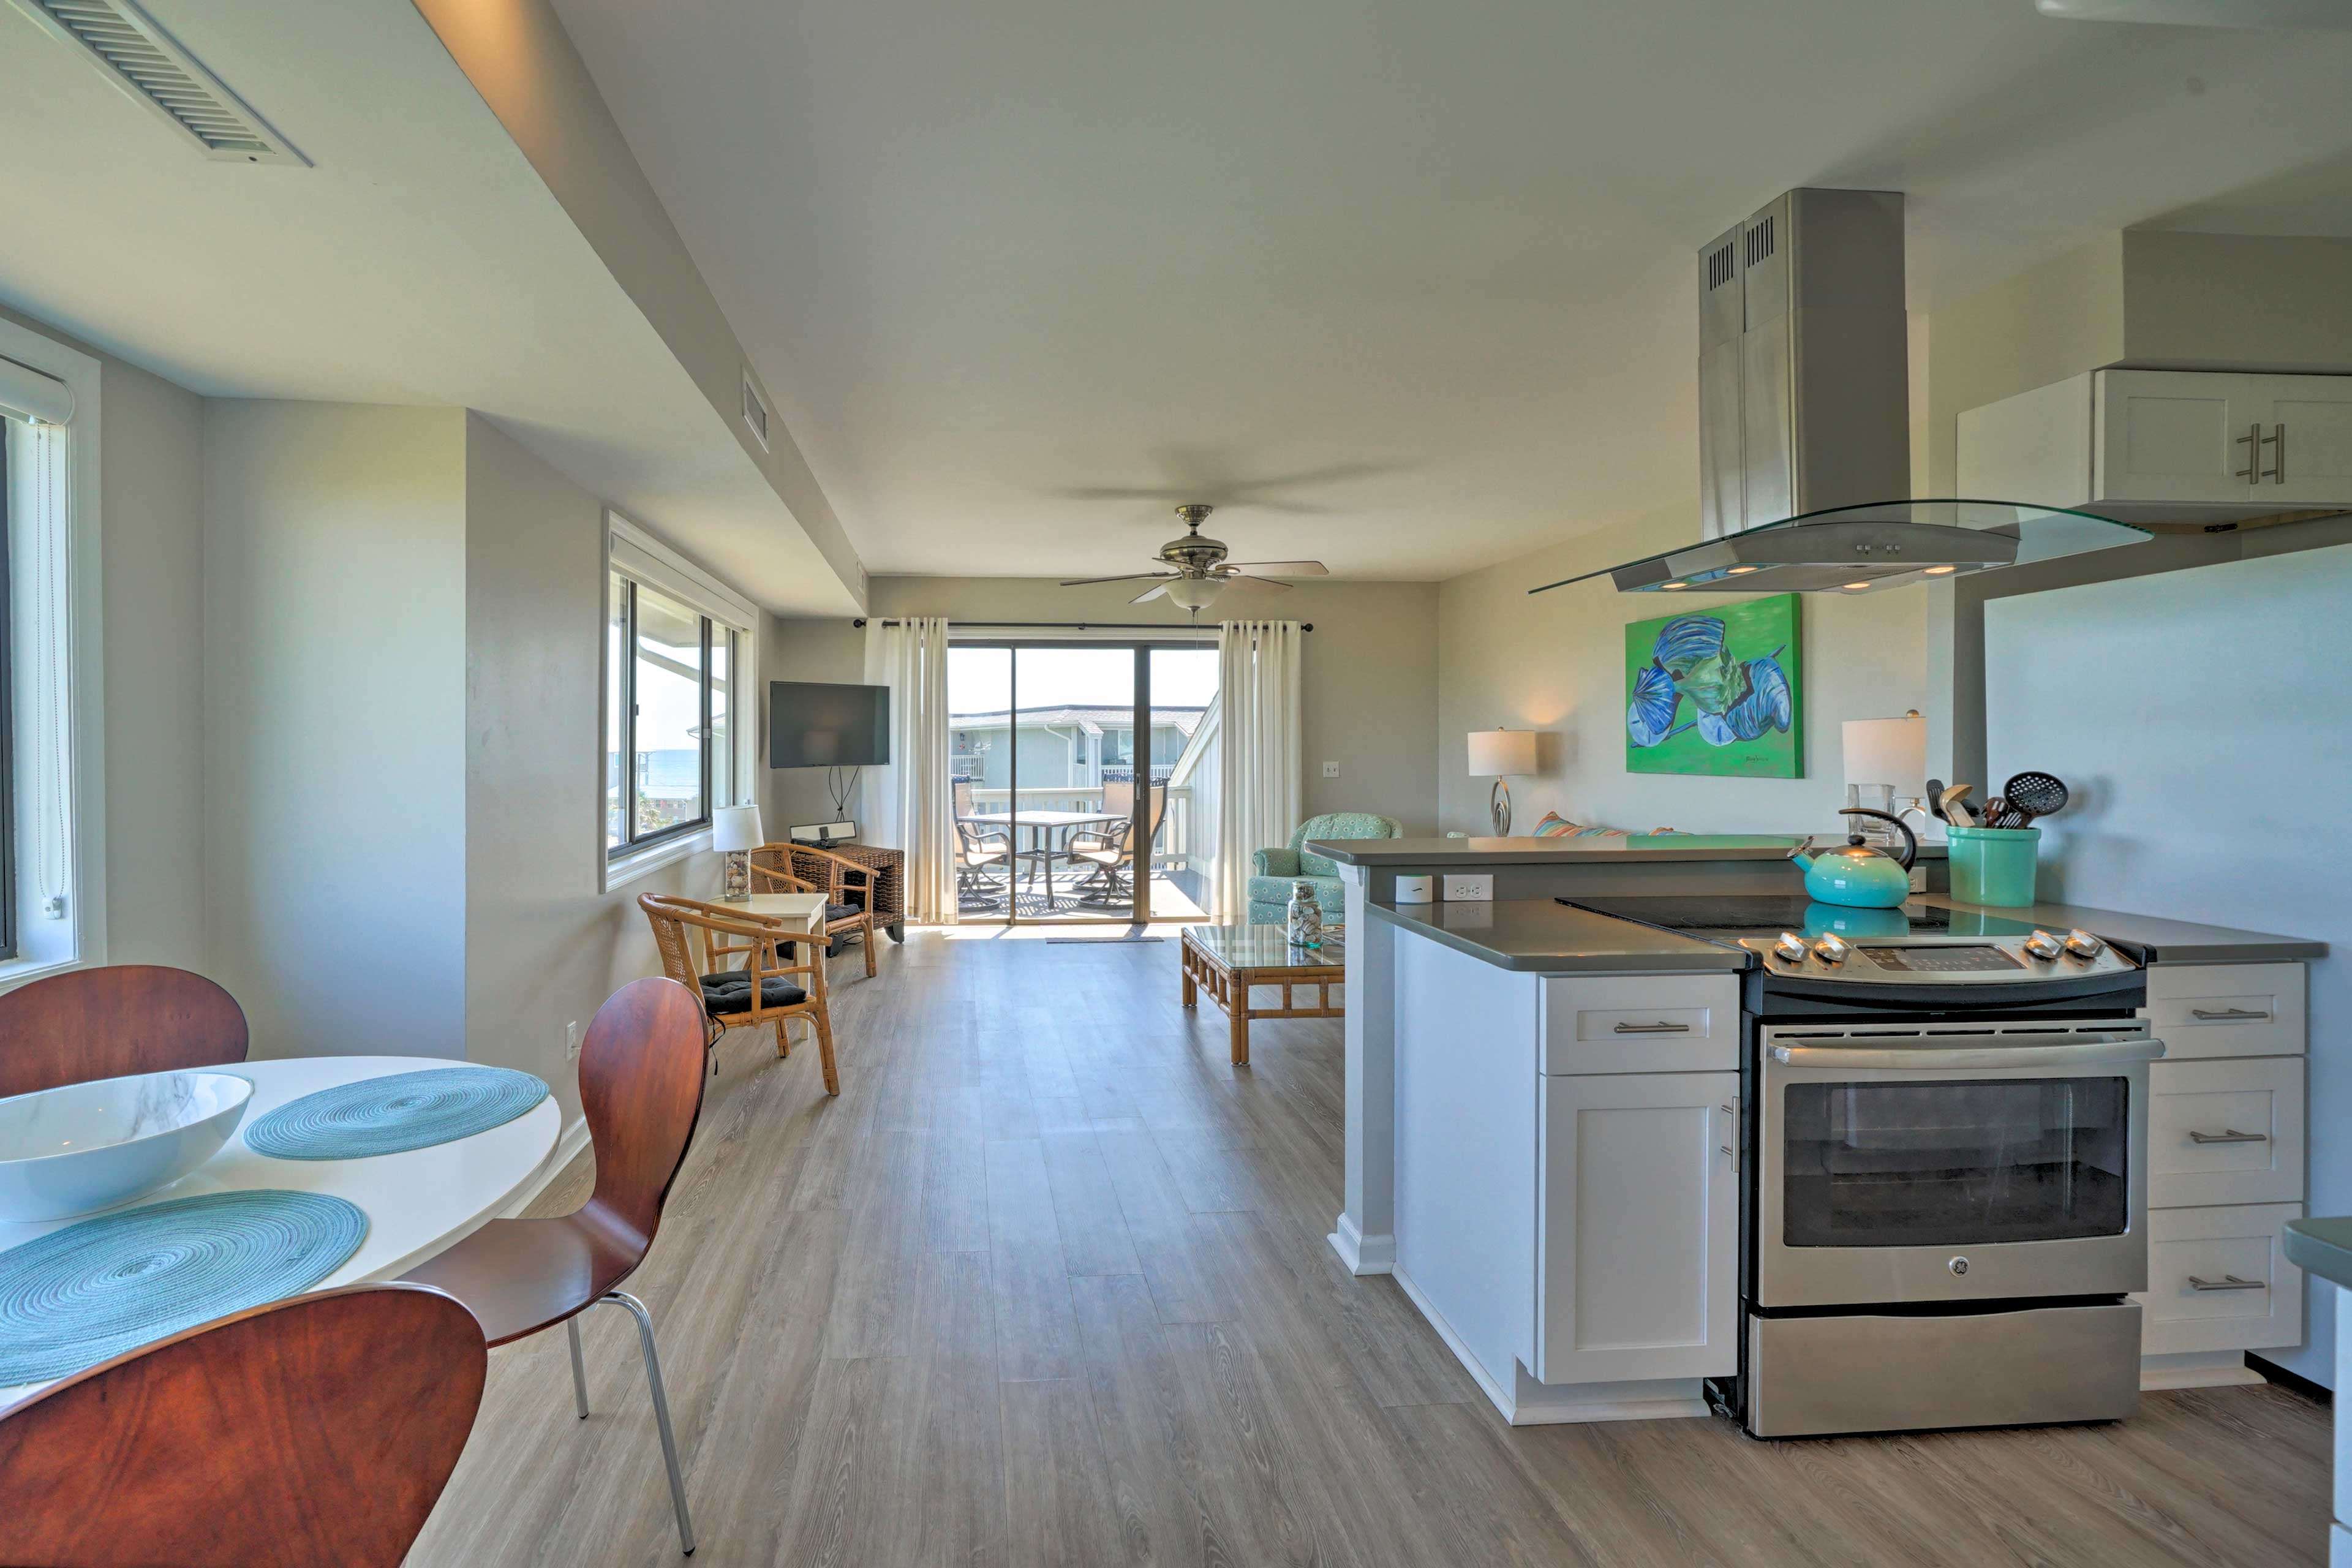 Enjoy the open spaces of this breezy condo.